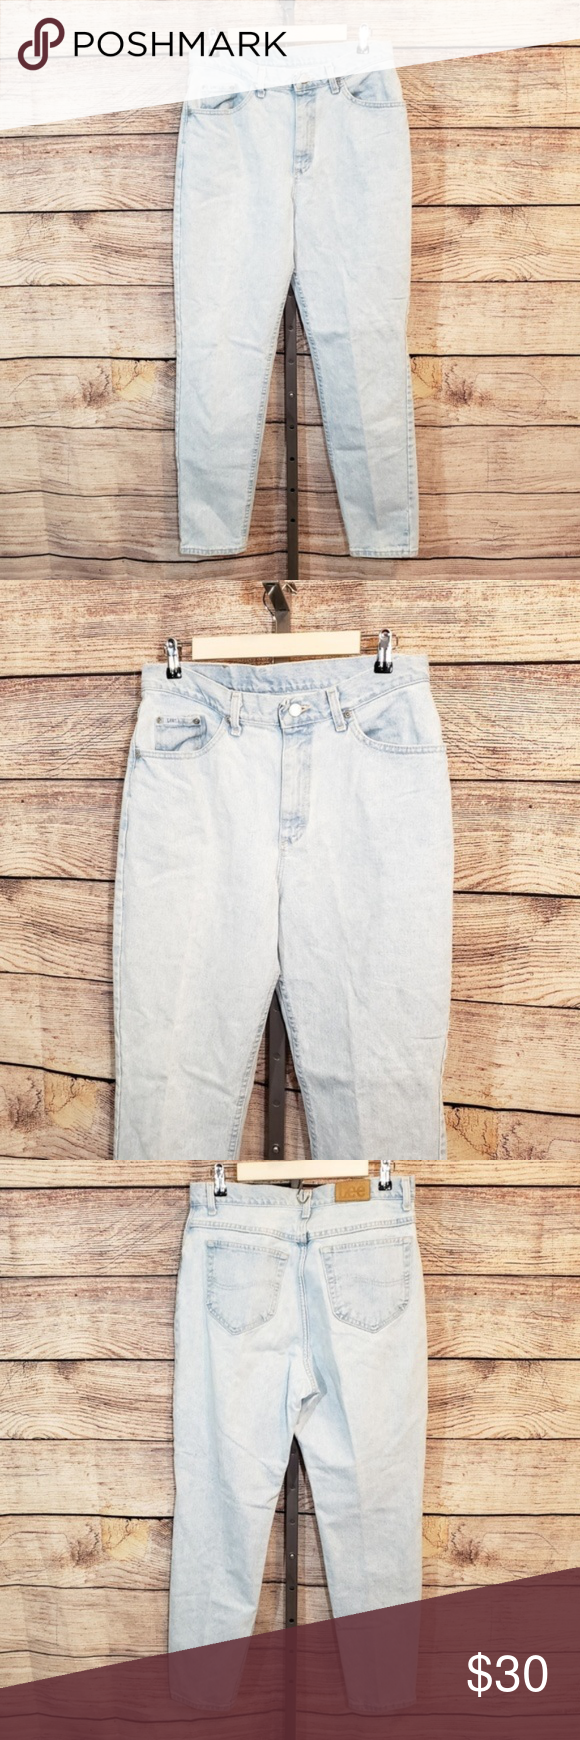 c77bfd35 Lee 90s Vintage High Waisted Mom Jeans light wash Light Wash Vintage 90's  high waisted straight